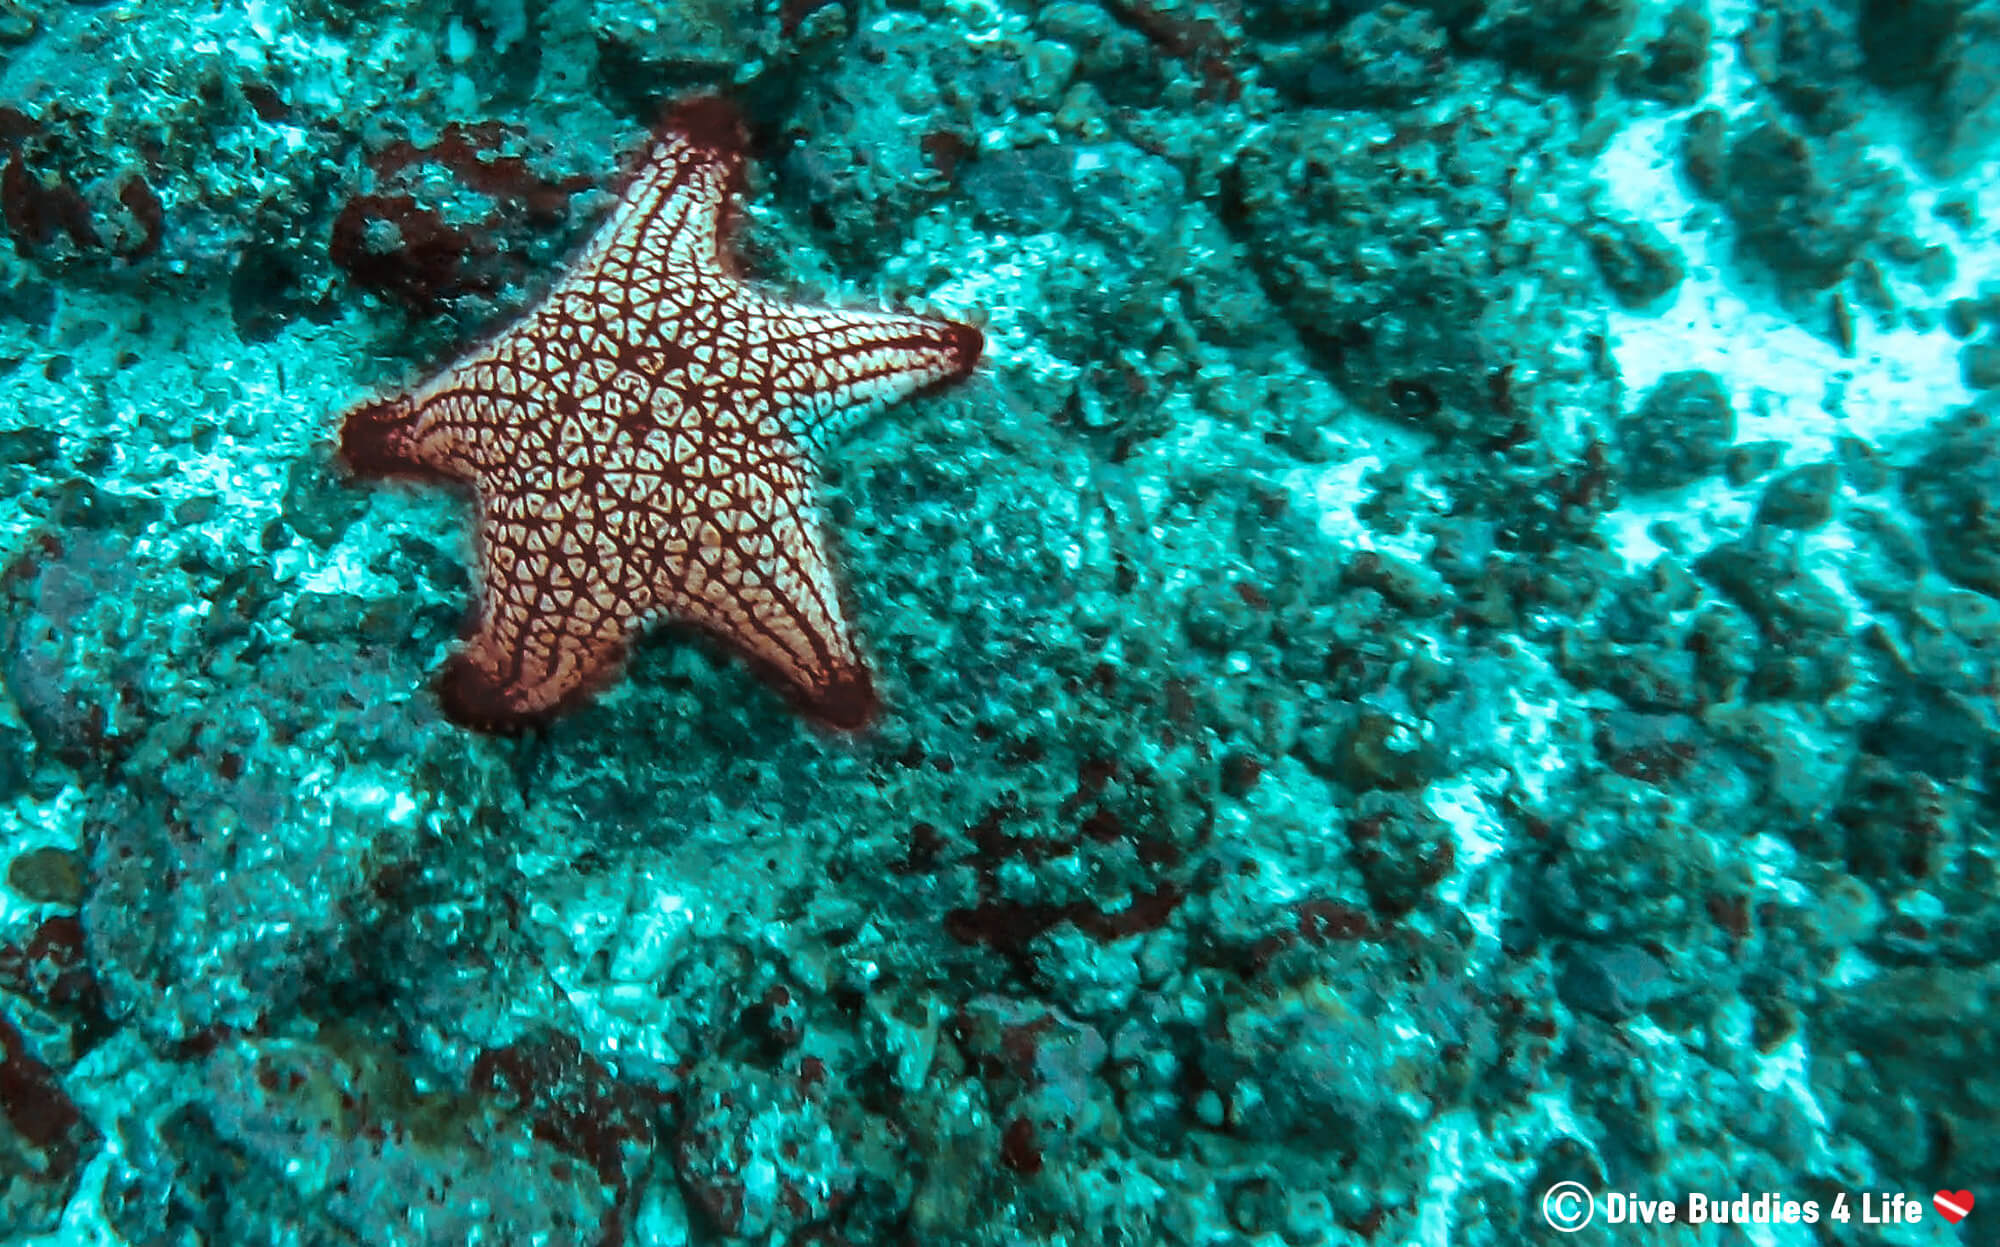 Panamic Cusion Sea Star In The Pacific Ocean Of Bat Islands, Costa Rica